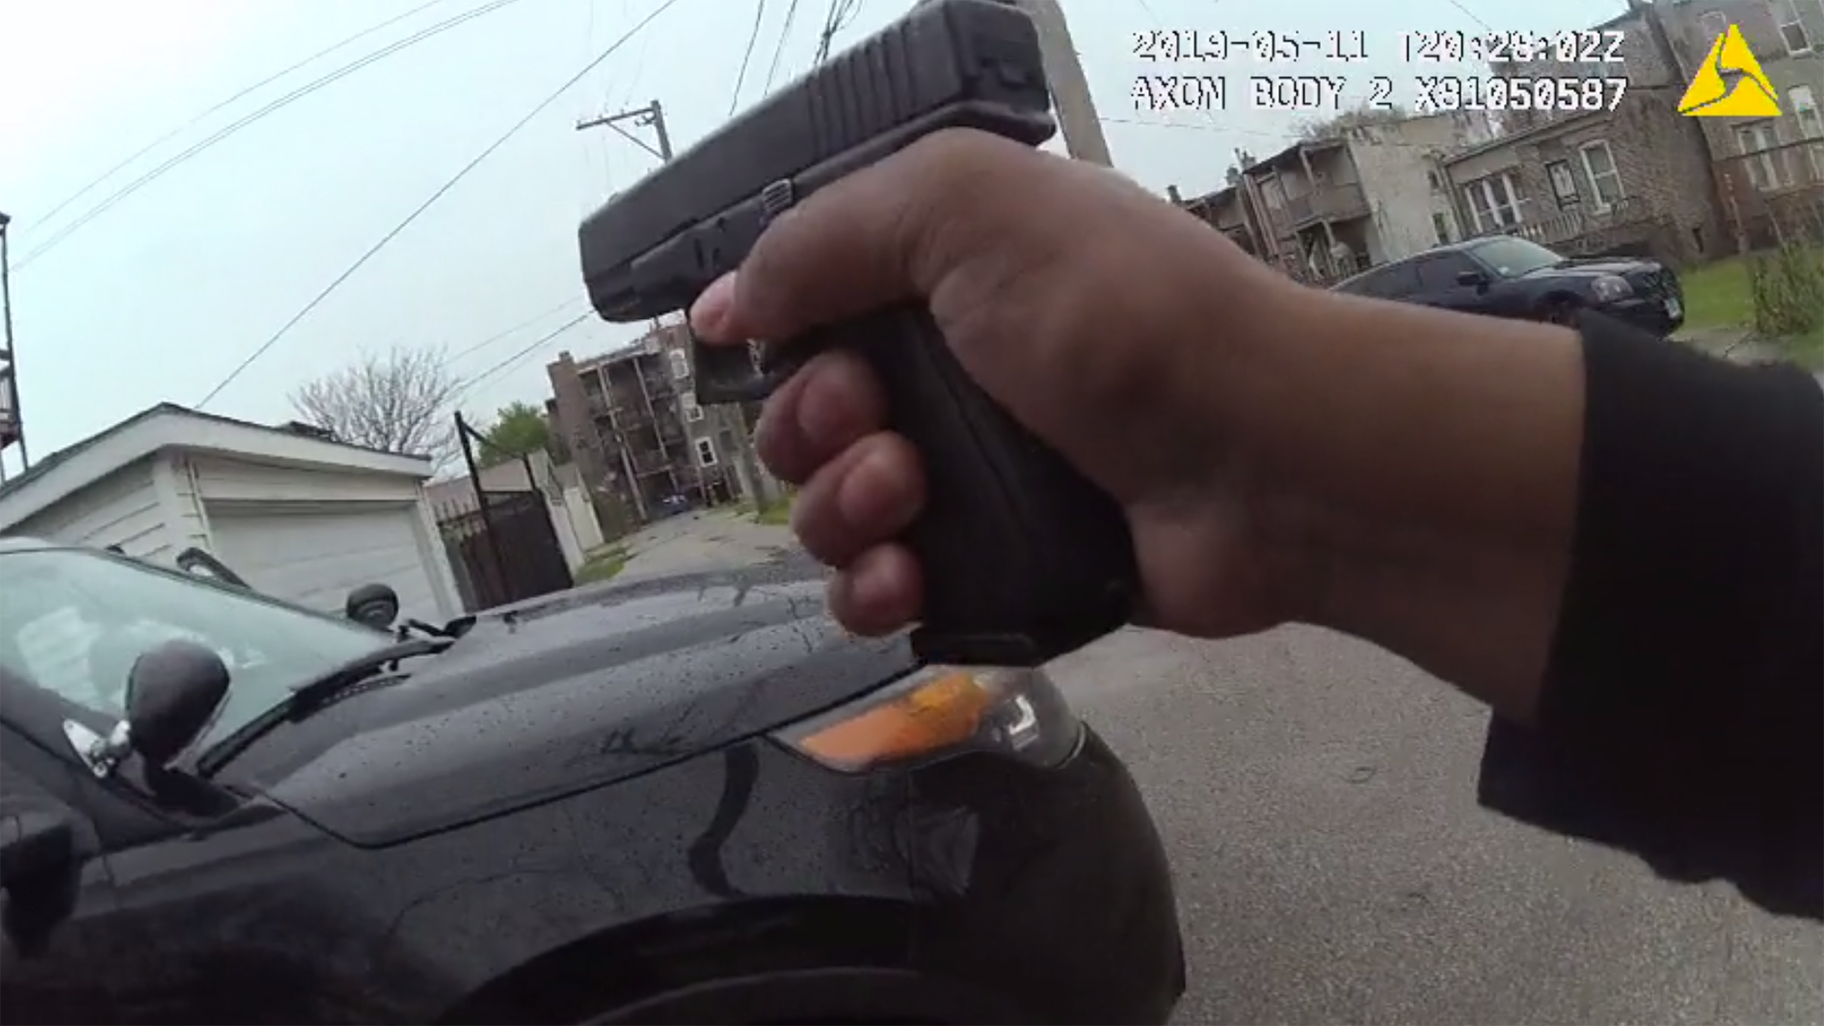 Body camera footage released last month shows the moments leading up to the fatal shooting of 26-year-old Sharell Brown by Chicago police officers. (Civilian Office of Police Accountability)